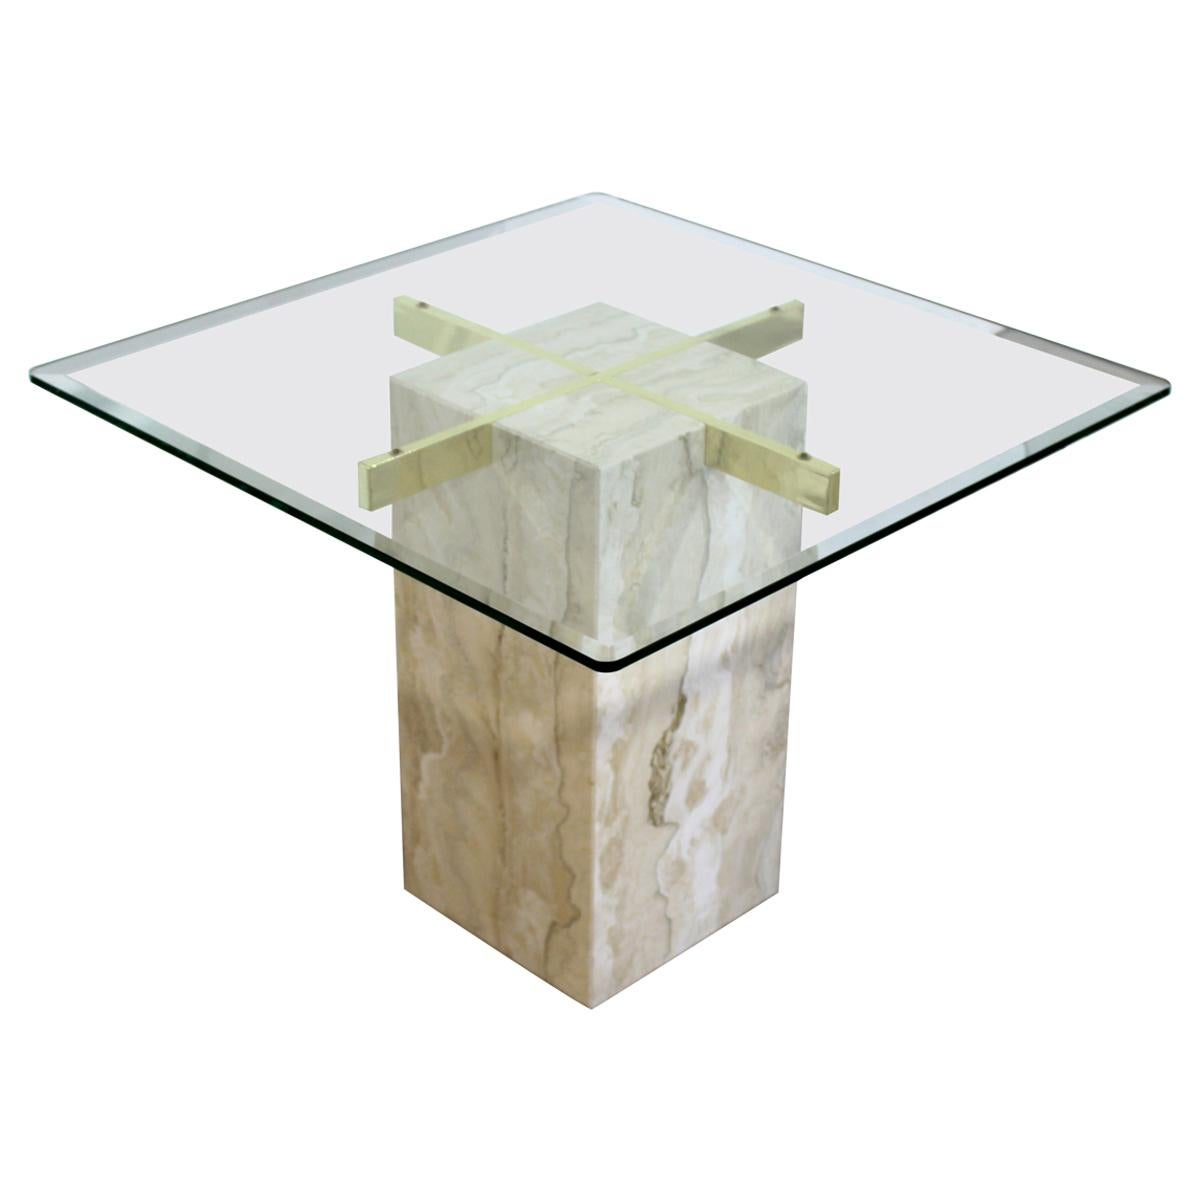 Mid-Century Modern Artedi Travertine & Brass Square Side End Table, Italy, 1970s